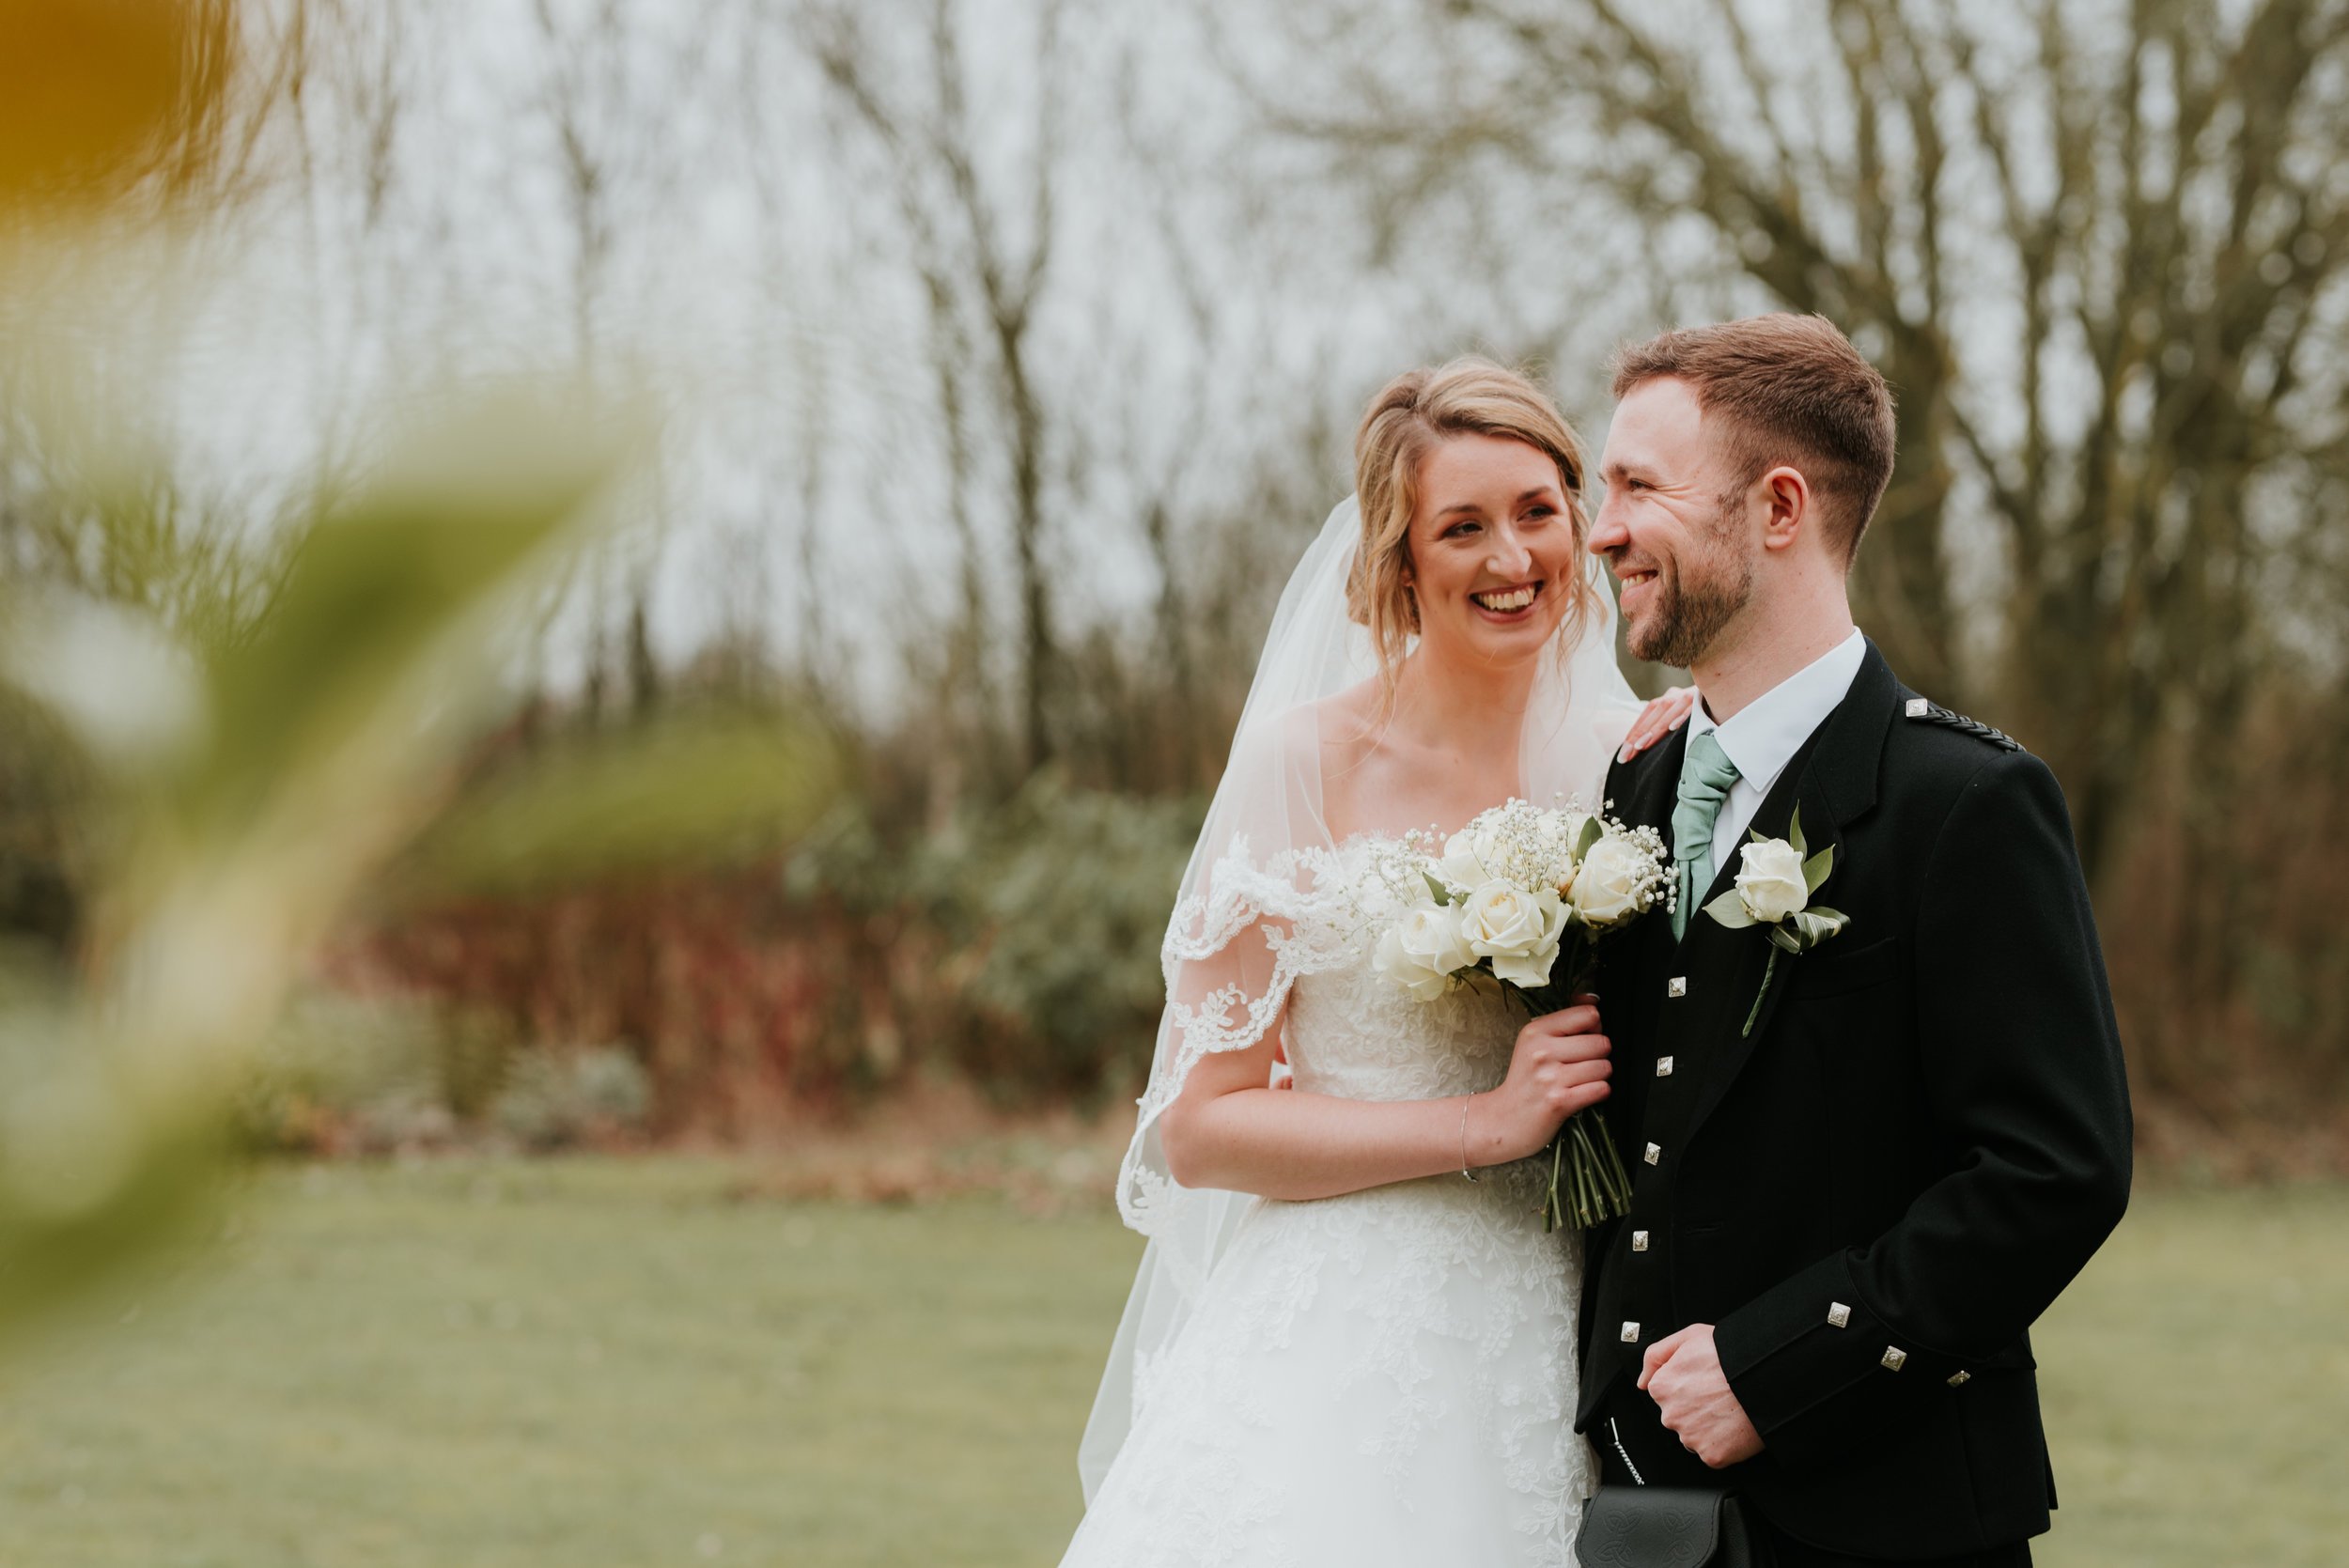 Outdoor wedding photography Berkshire